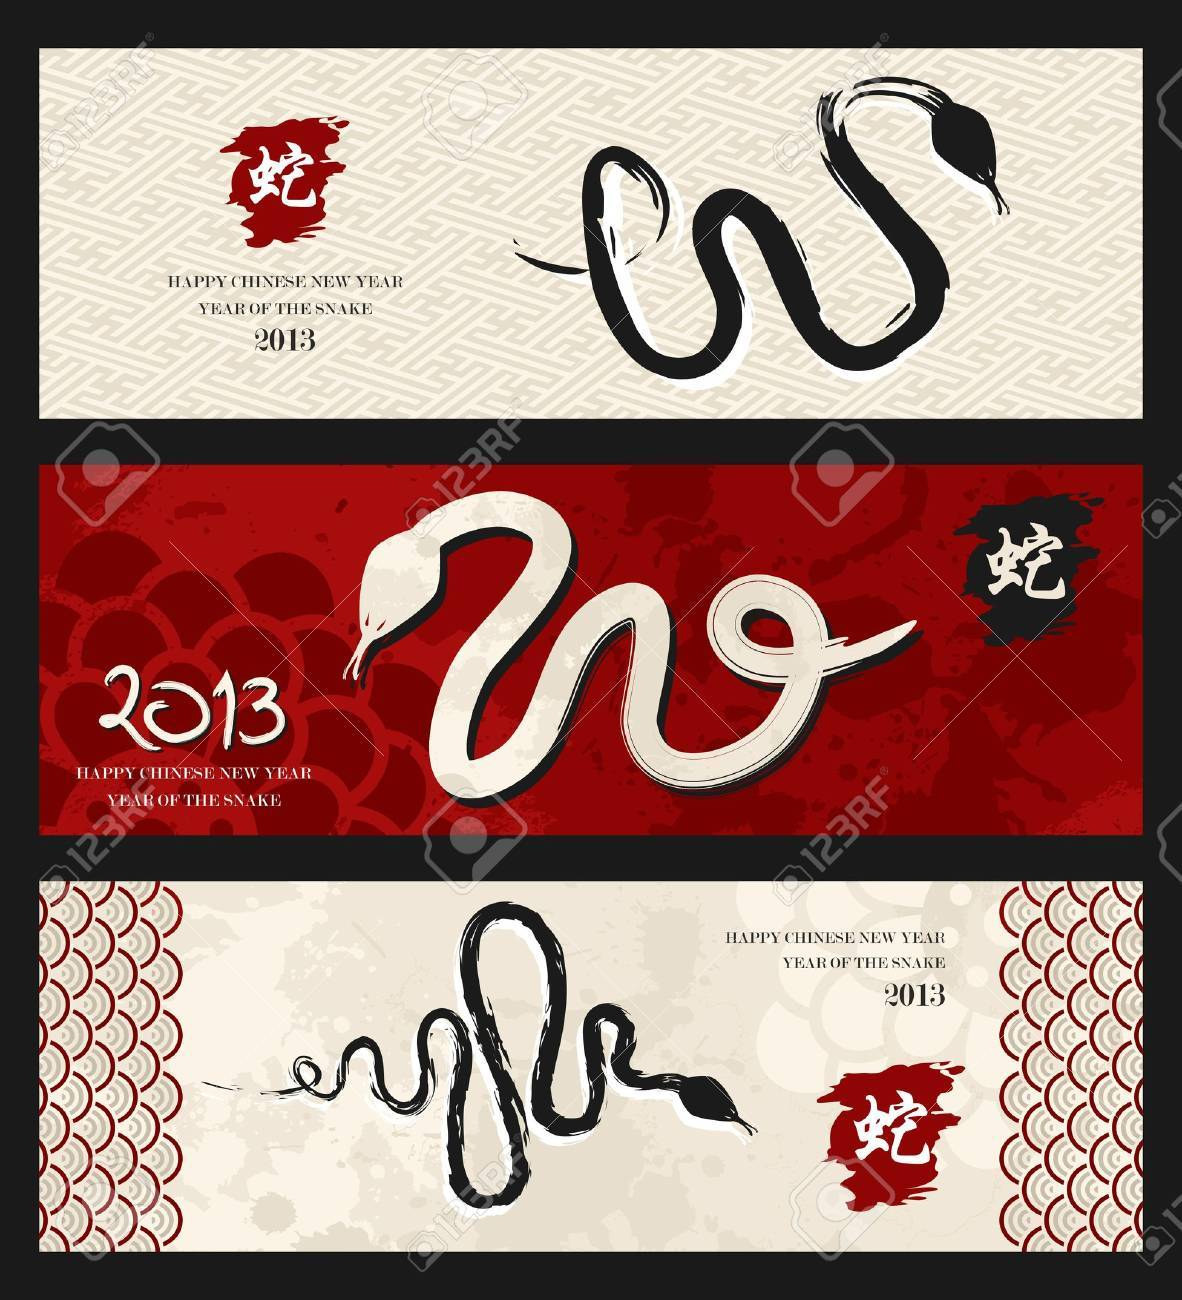 2013 Chinese New Year of the Snake brush style illustration banners set. illustration layered for easy manipulation and custom coloring. Stock Vector - 16571995